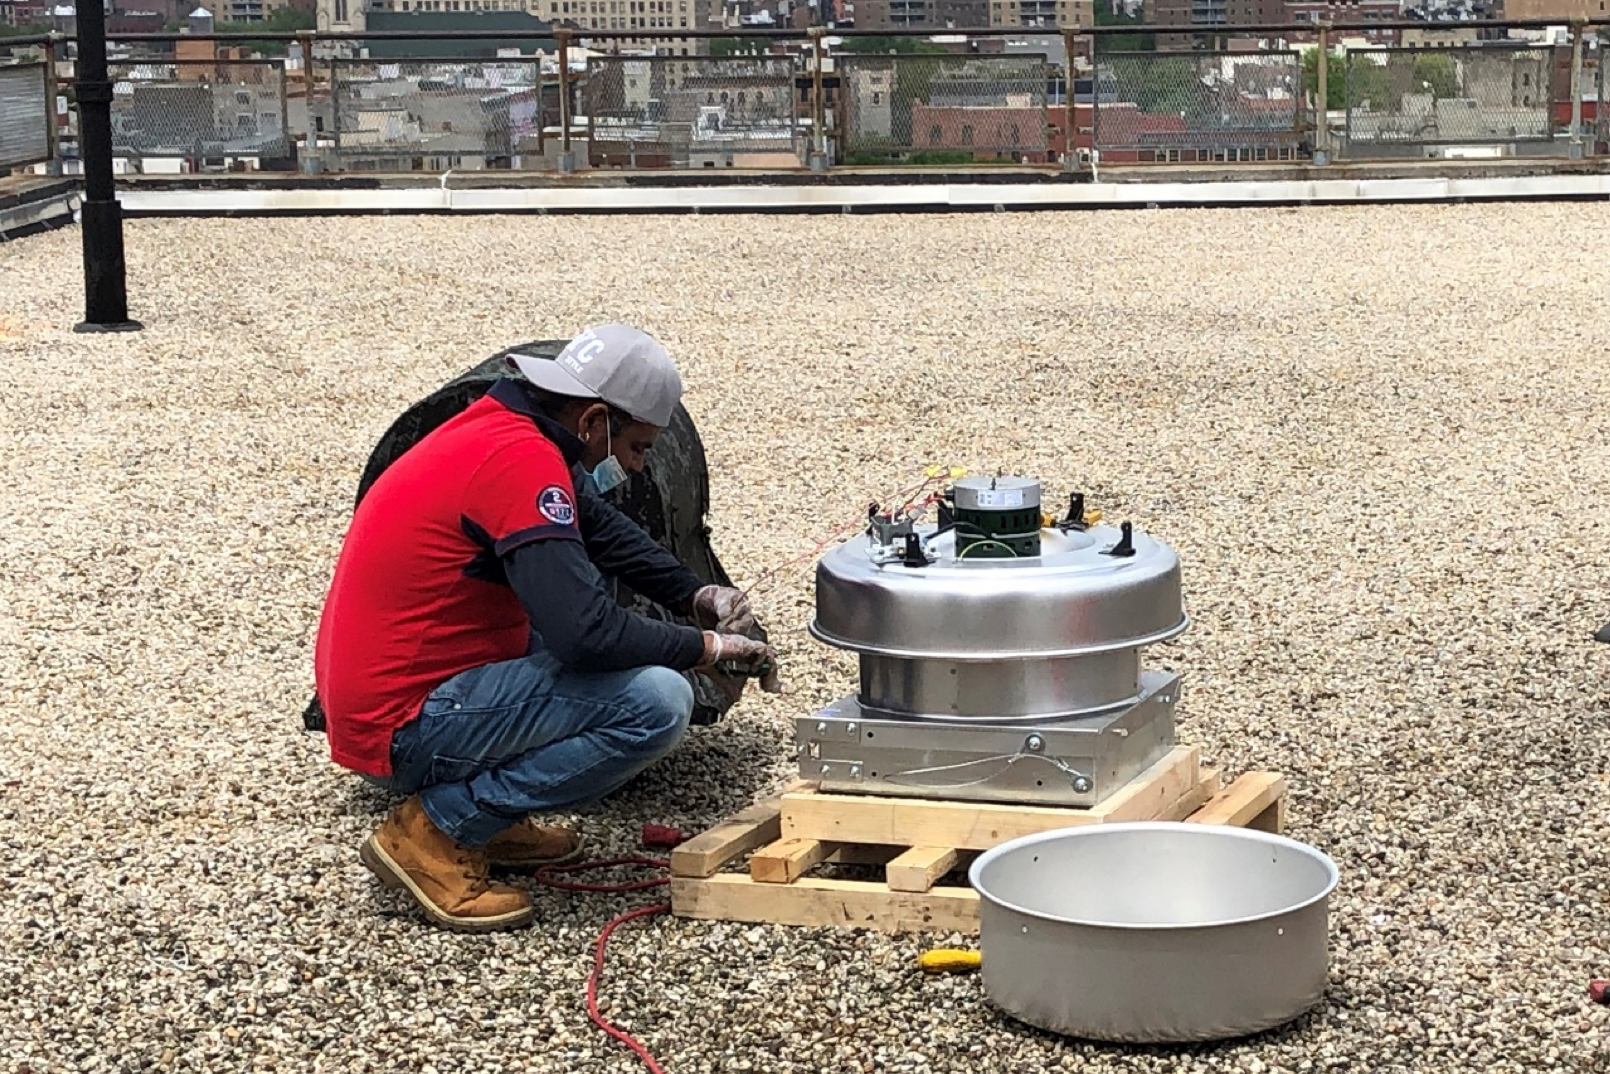 A worker installs a fan on the roof of a Wald Houses roof in the East Village.